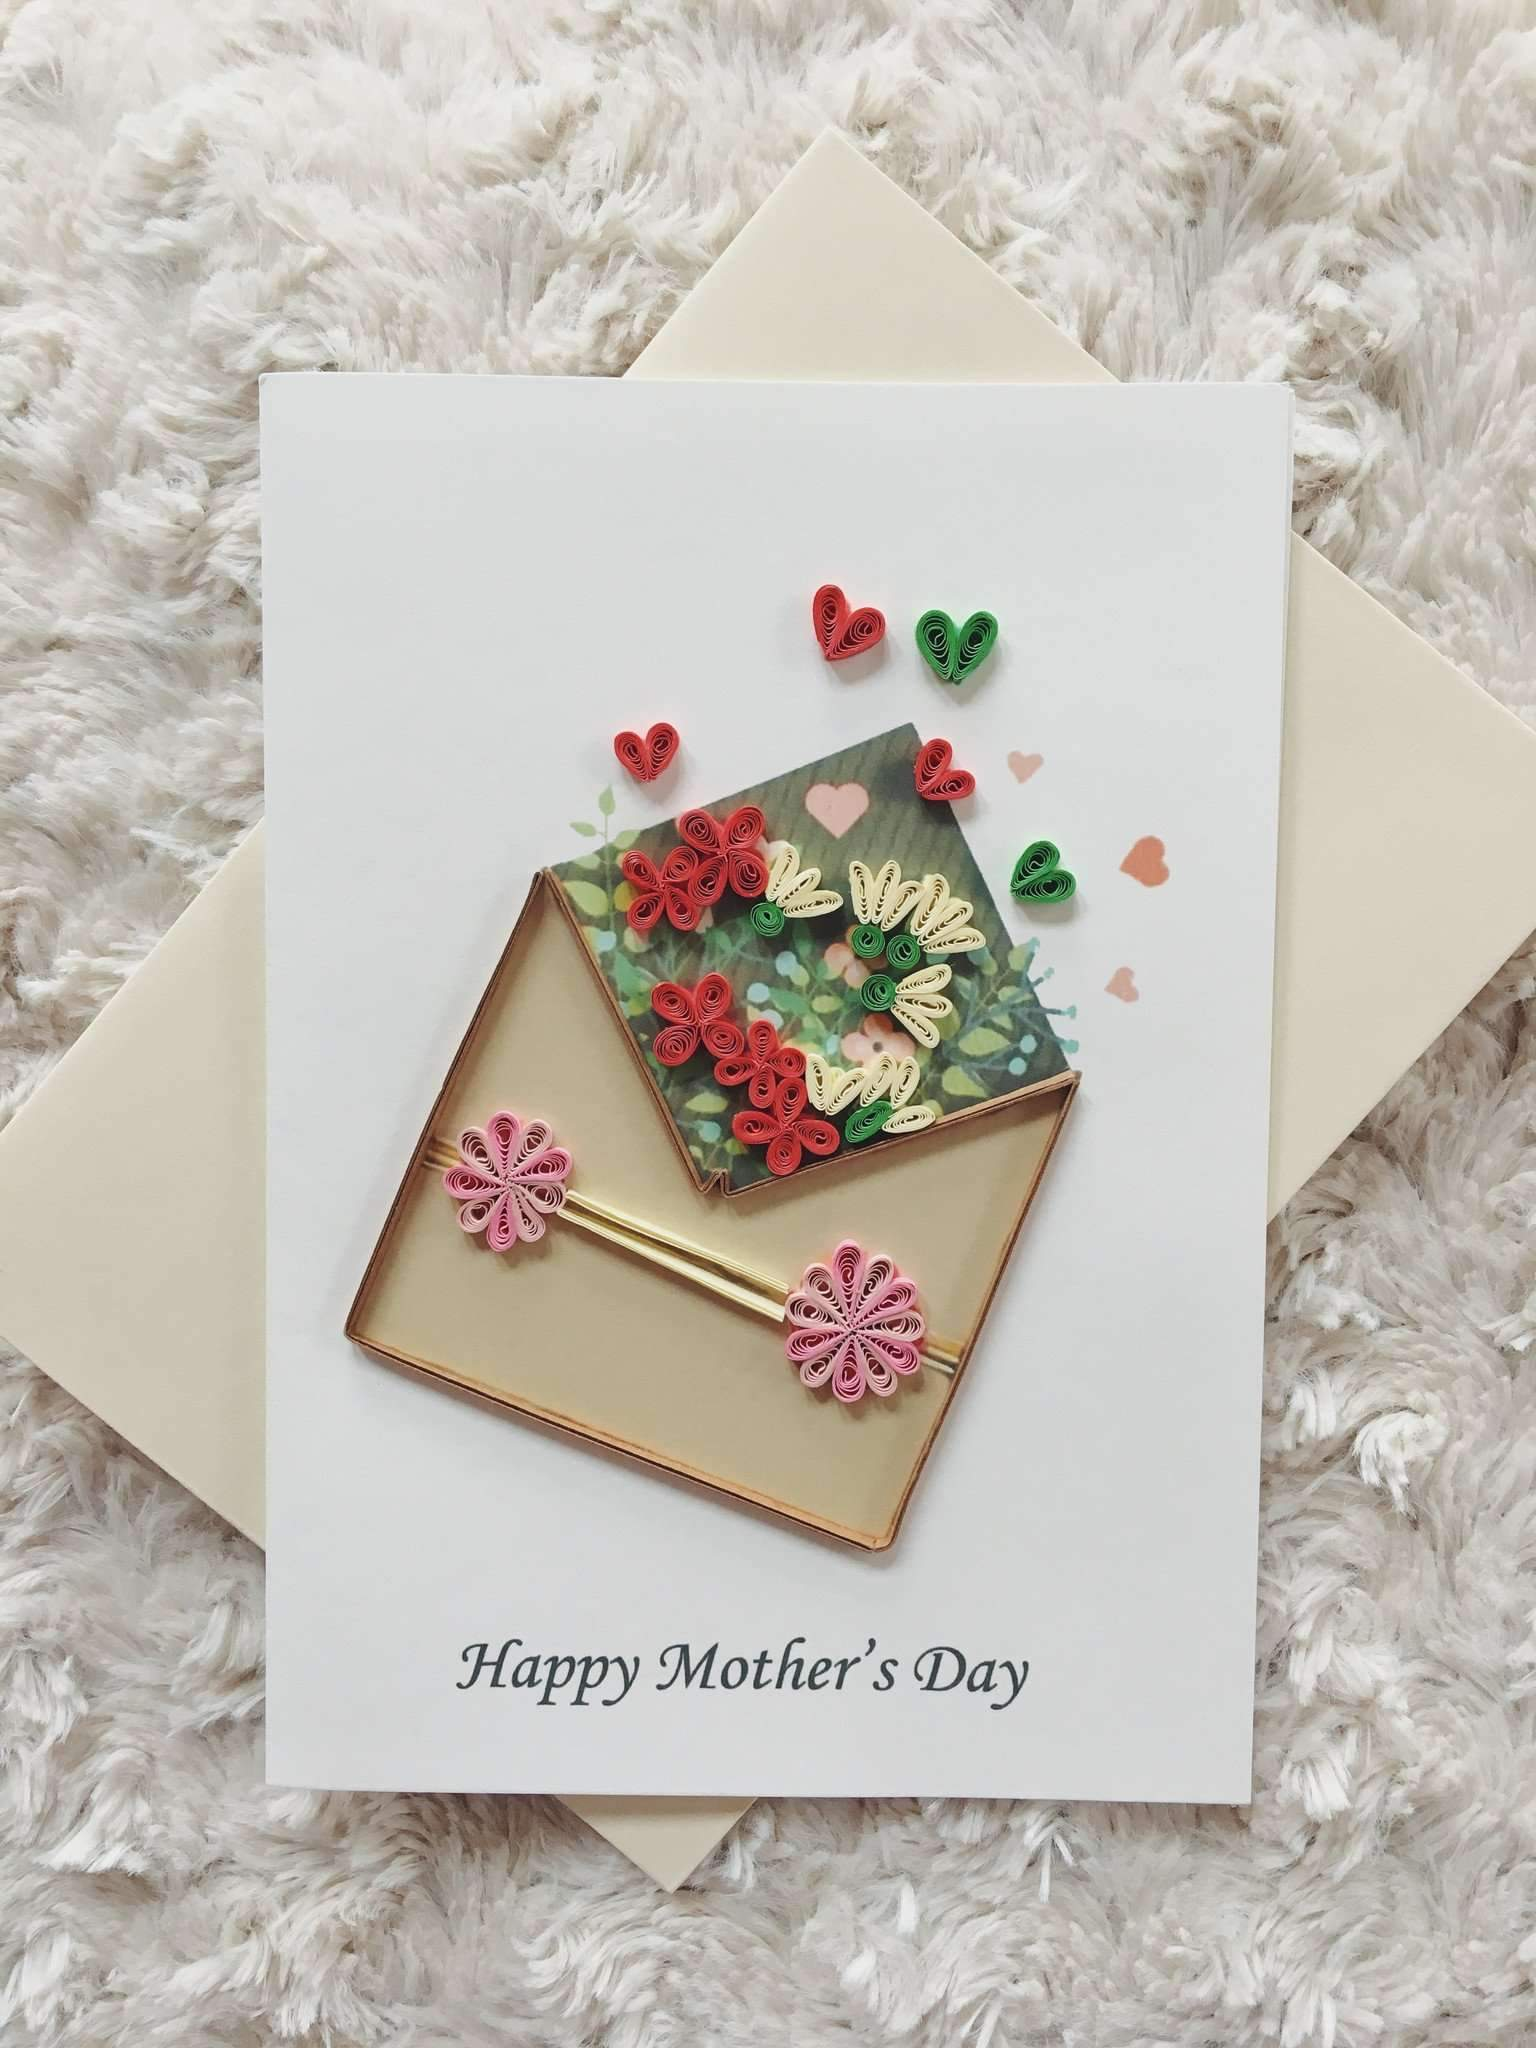 Diy Projects For Mother S Day Easy Craft Ideas